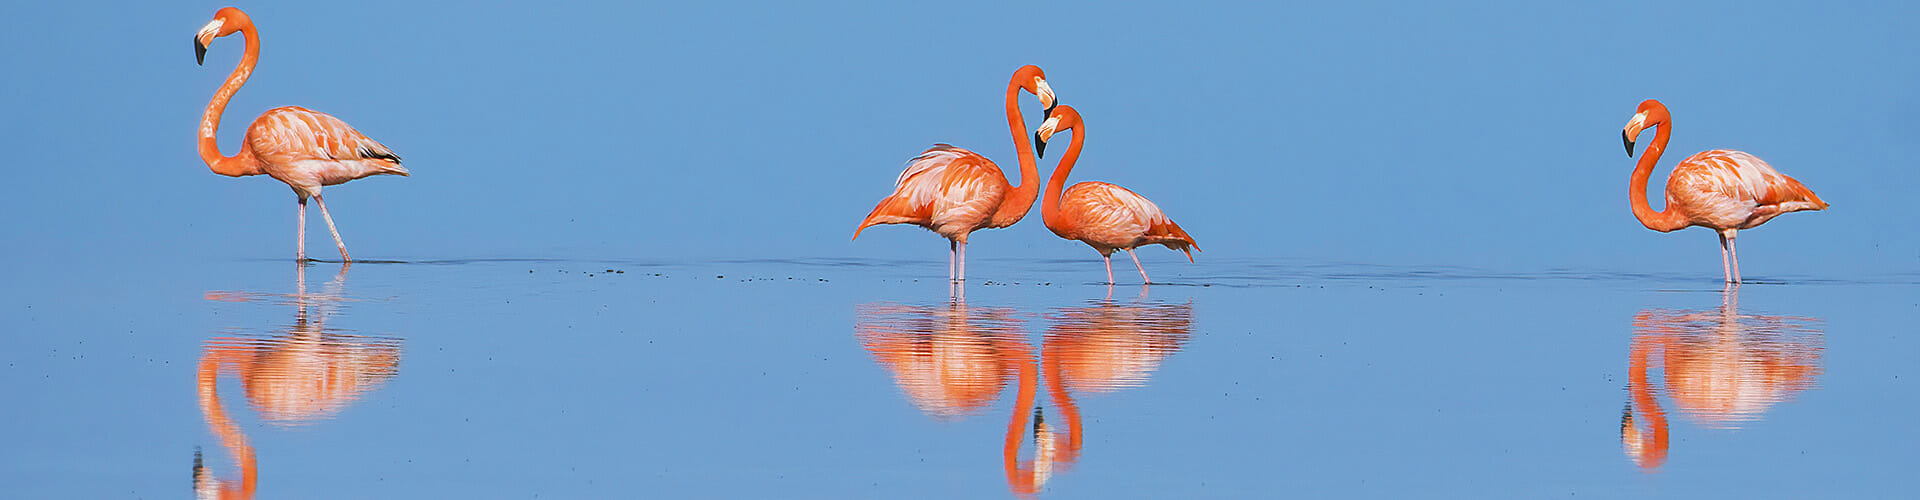 Flamingos, Mexico